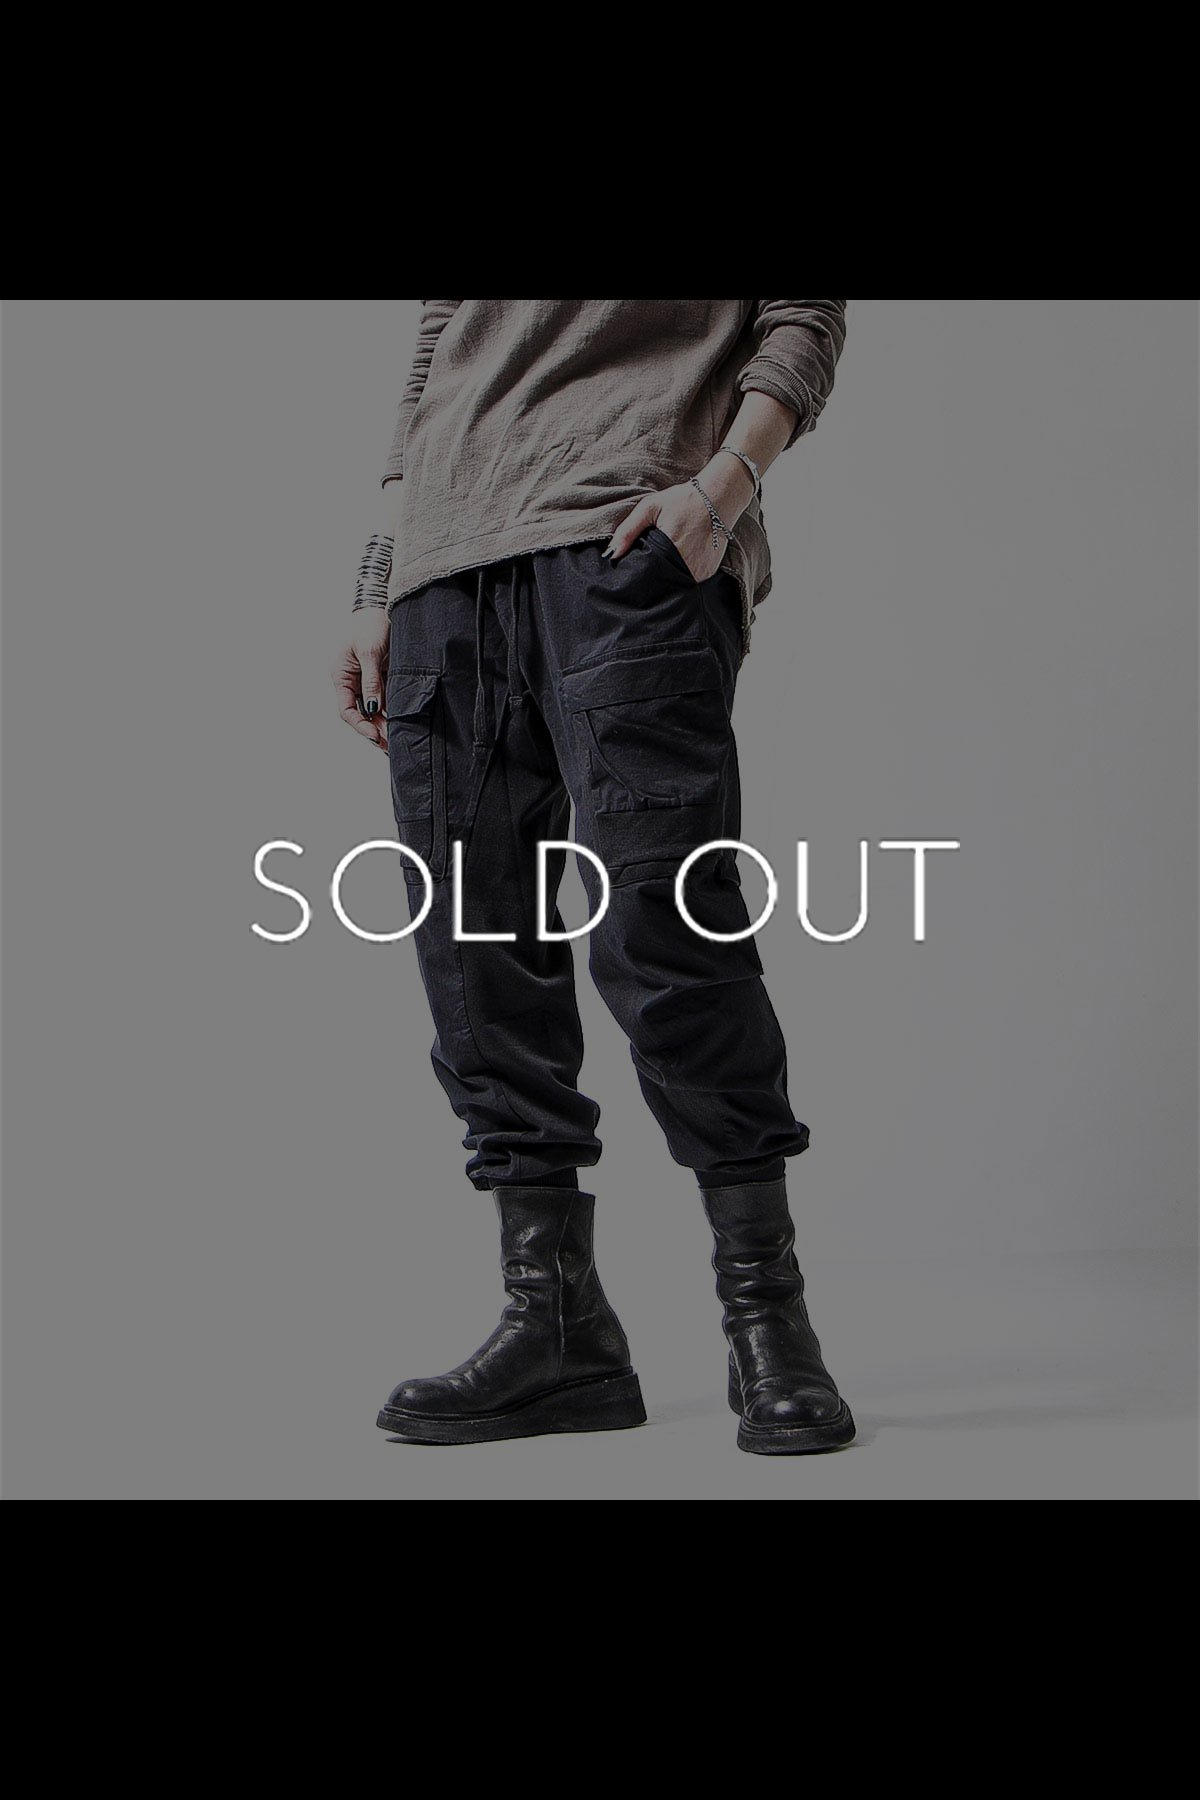 <img class='new_mark_img1' src='https://img.shop-pro.jp/img/new/icons8.gif' style='border:none;display:inline;margin:0px;padding:0px;width:auto;' />UNISEX PATCHED POCKET RIB PANTS MST237_BLACK